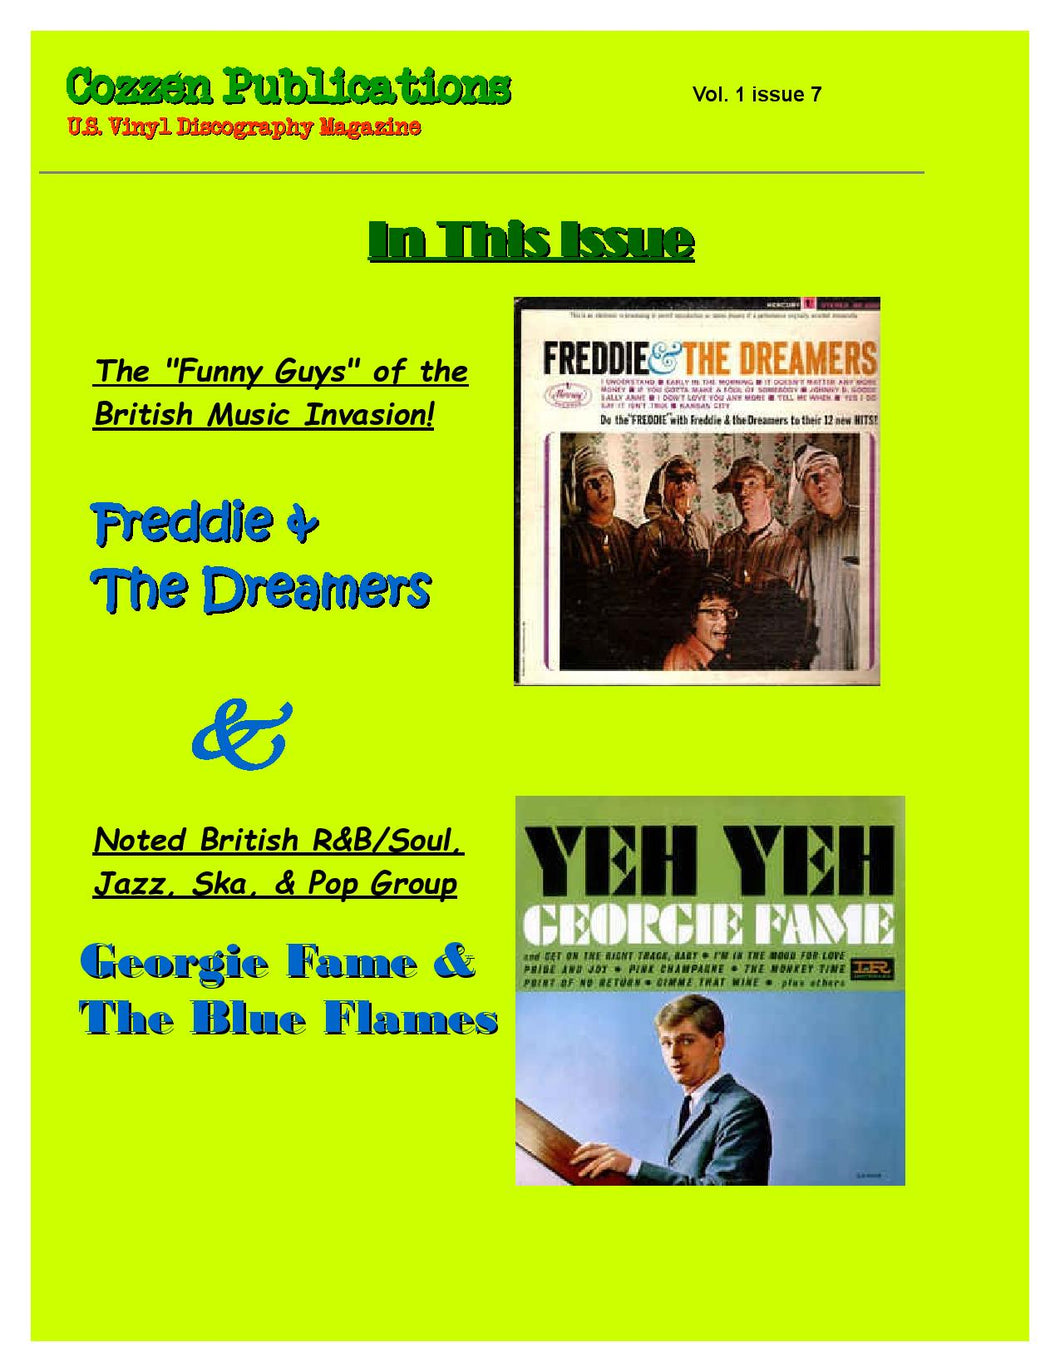 Freddie & The Dreamers and Georgie Fame & The Blue Flames - U. S. Vinyl Discography - Vol. 1 Issue 7 Magazine